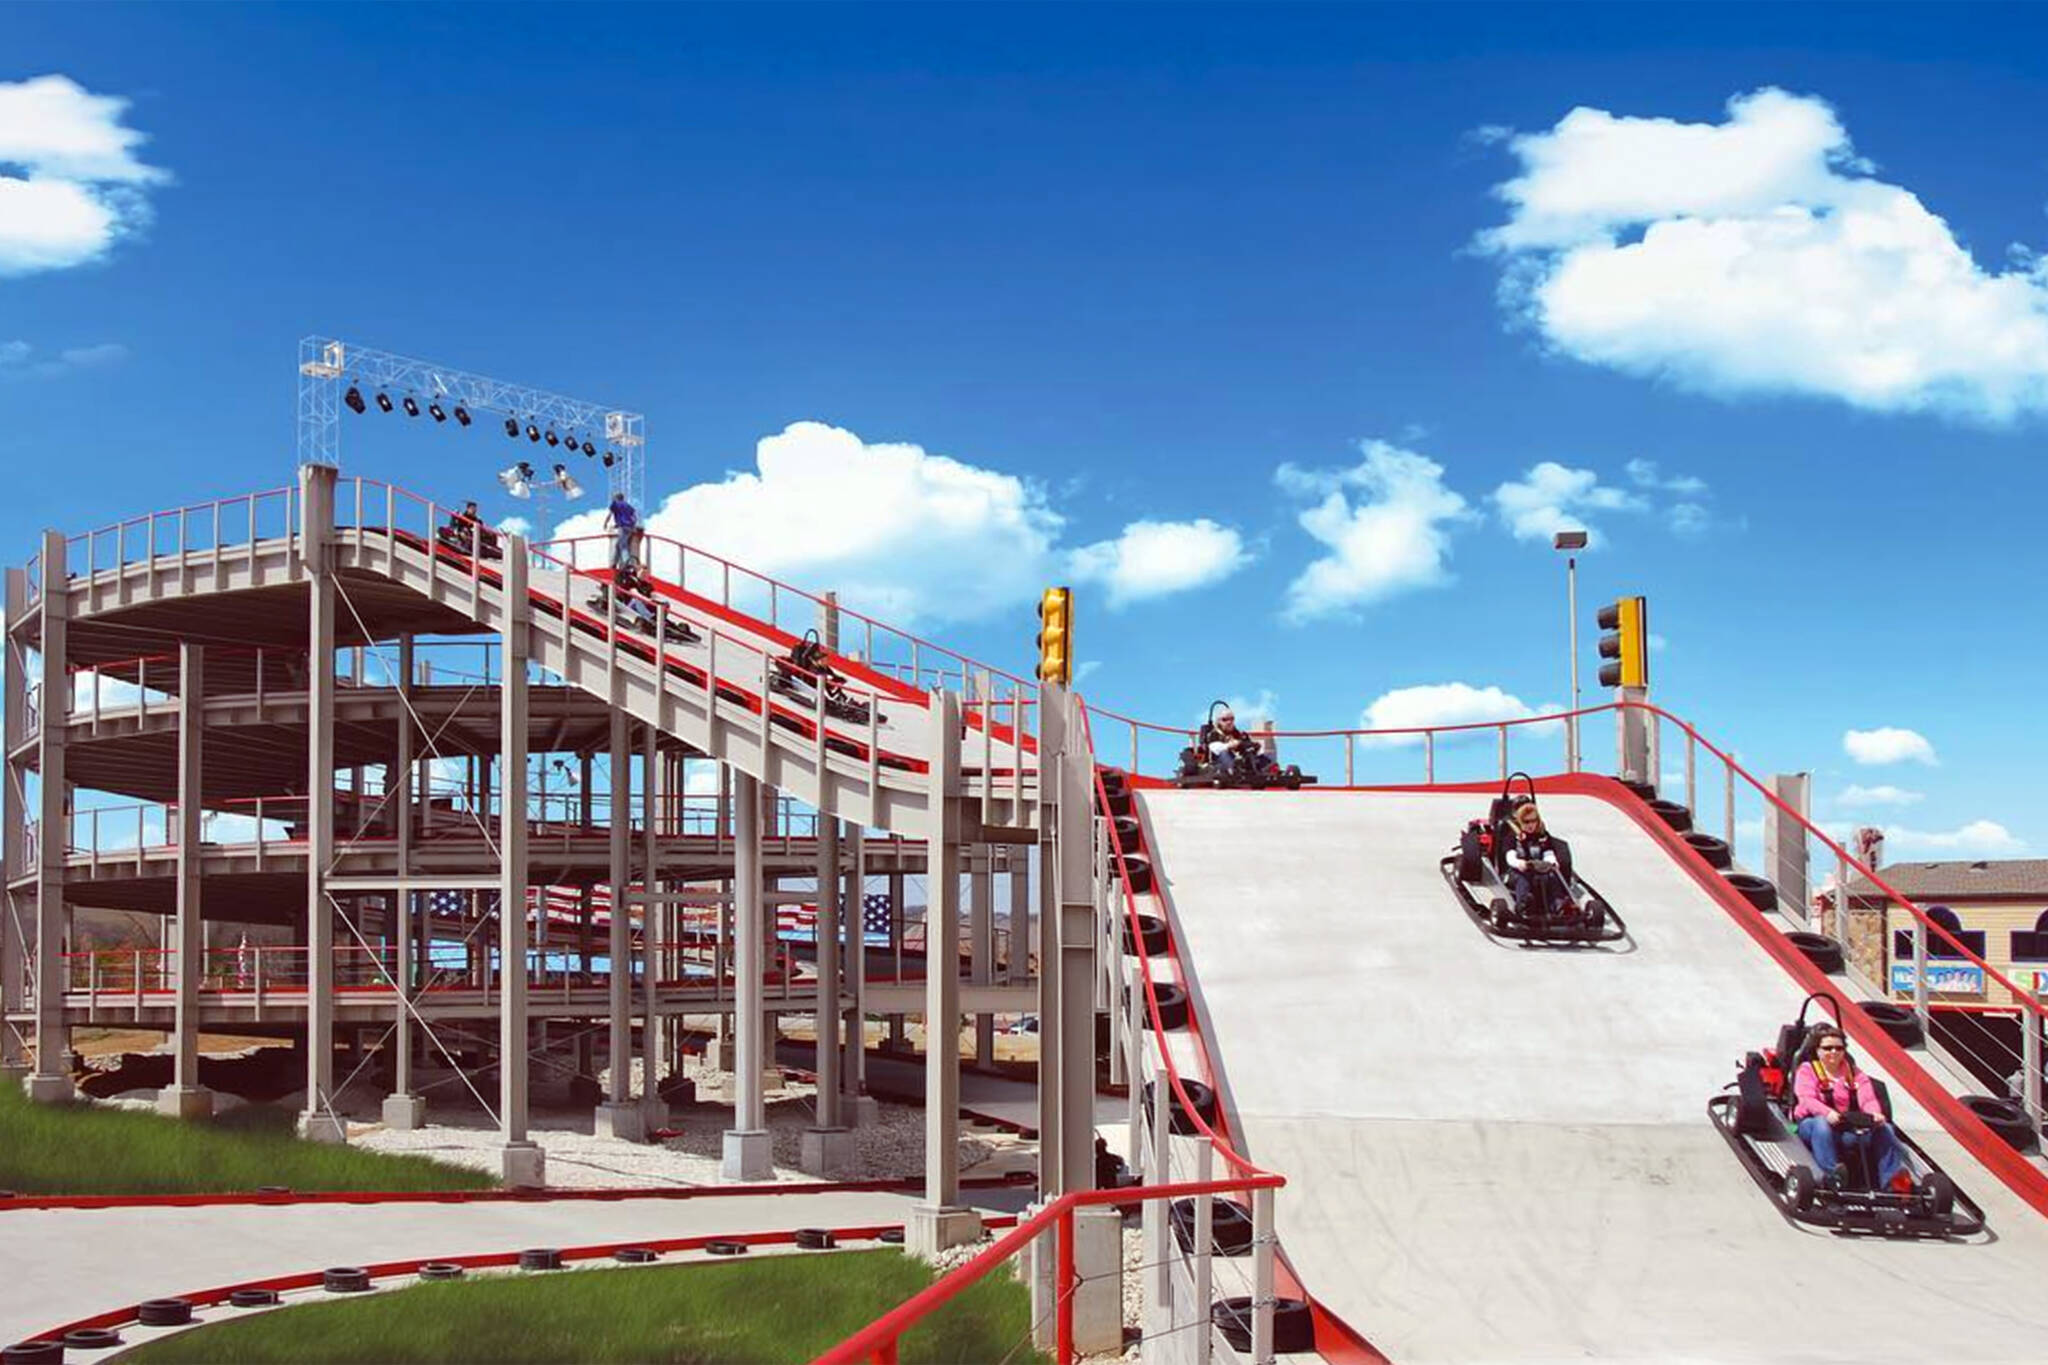 Go Kart Places In Panama City Beach